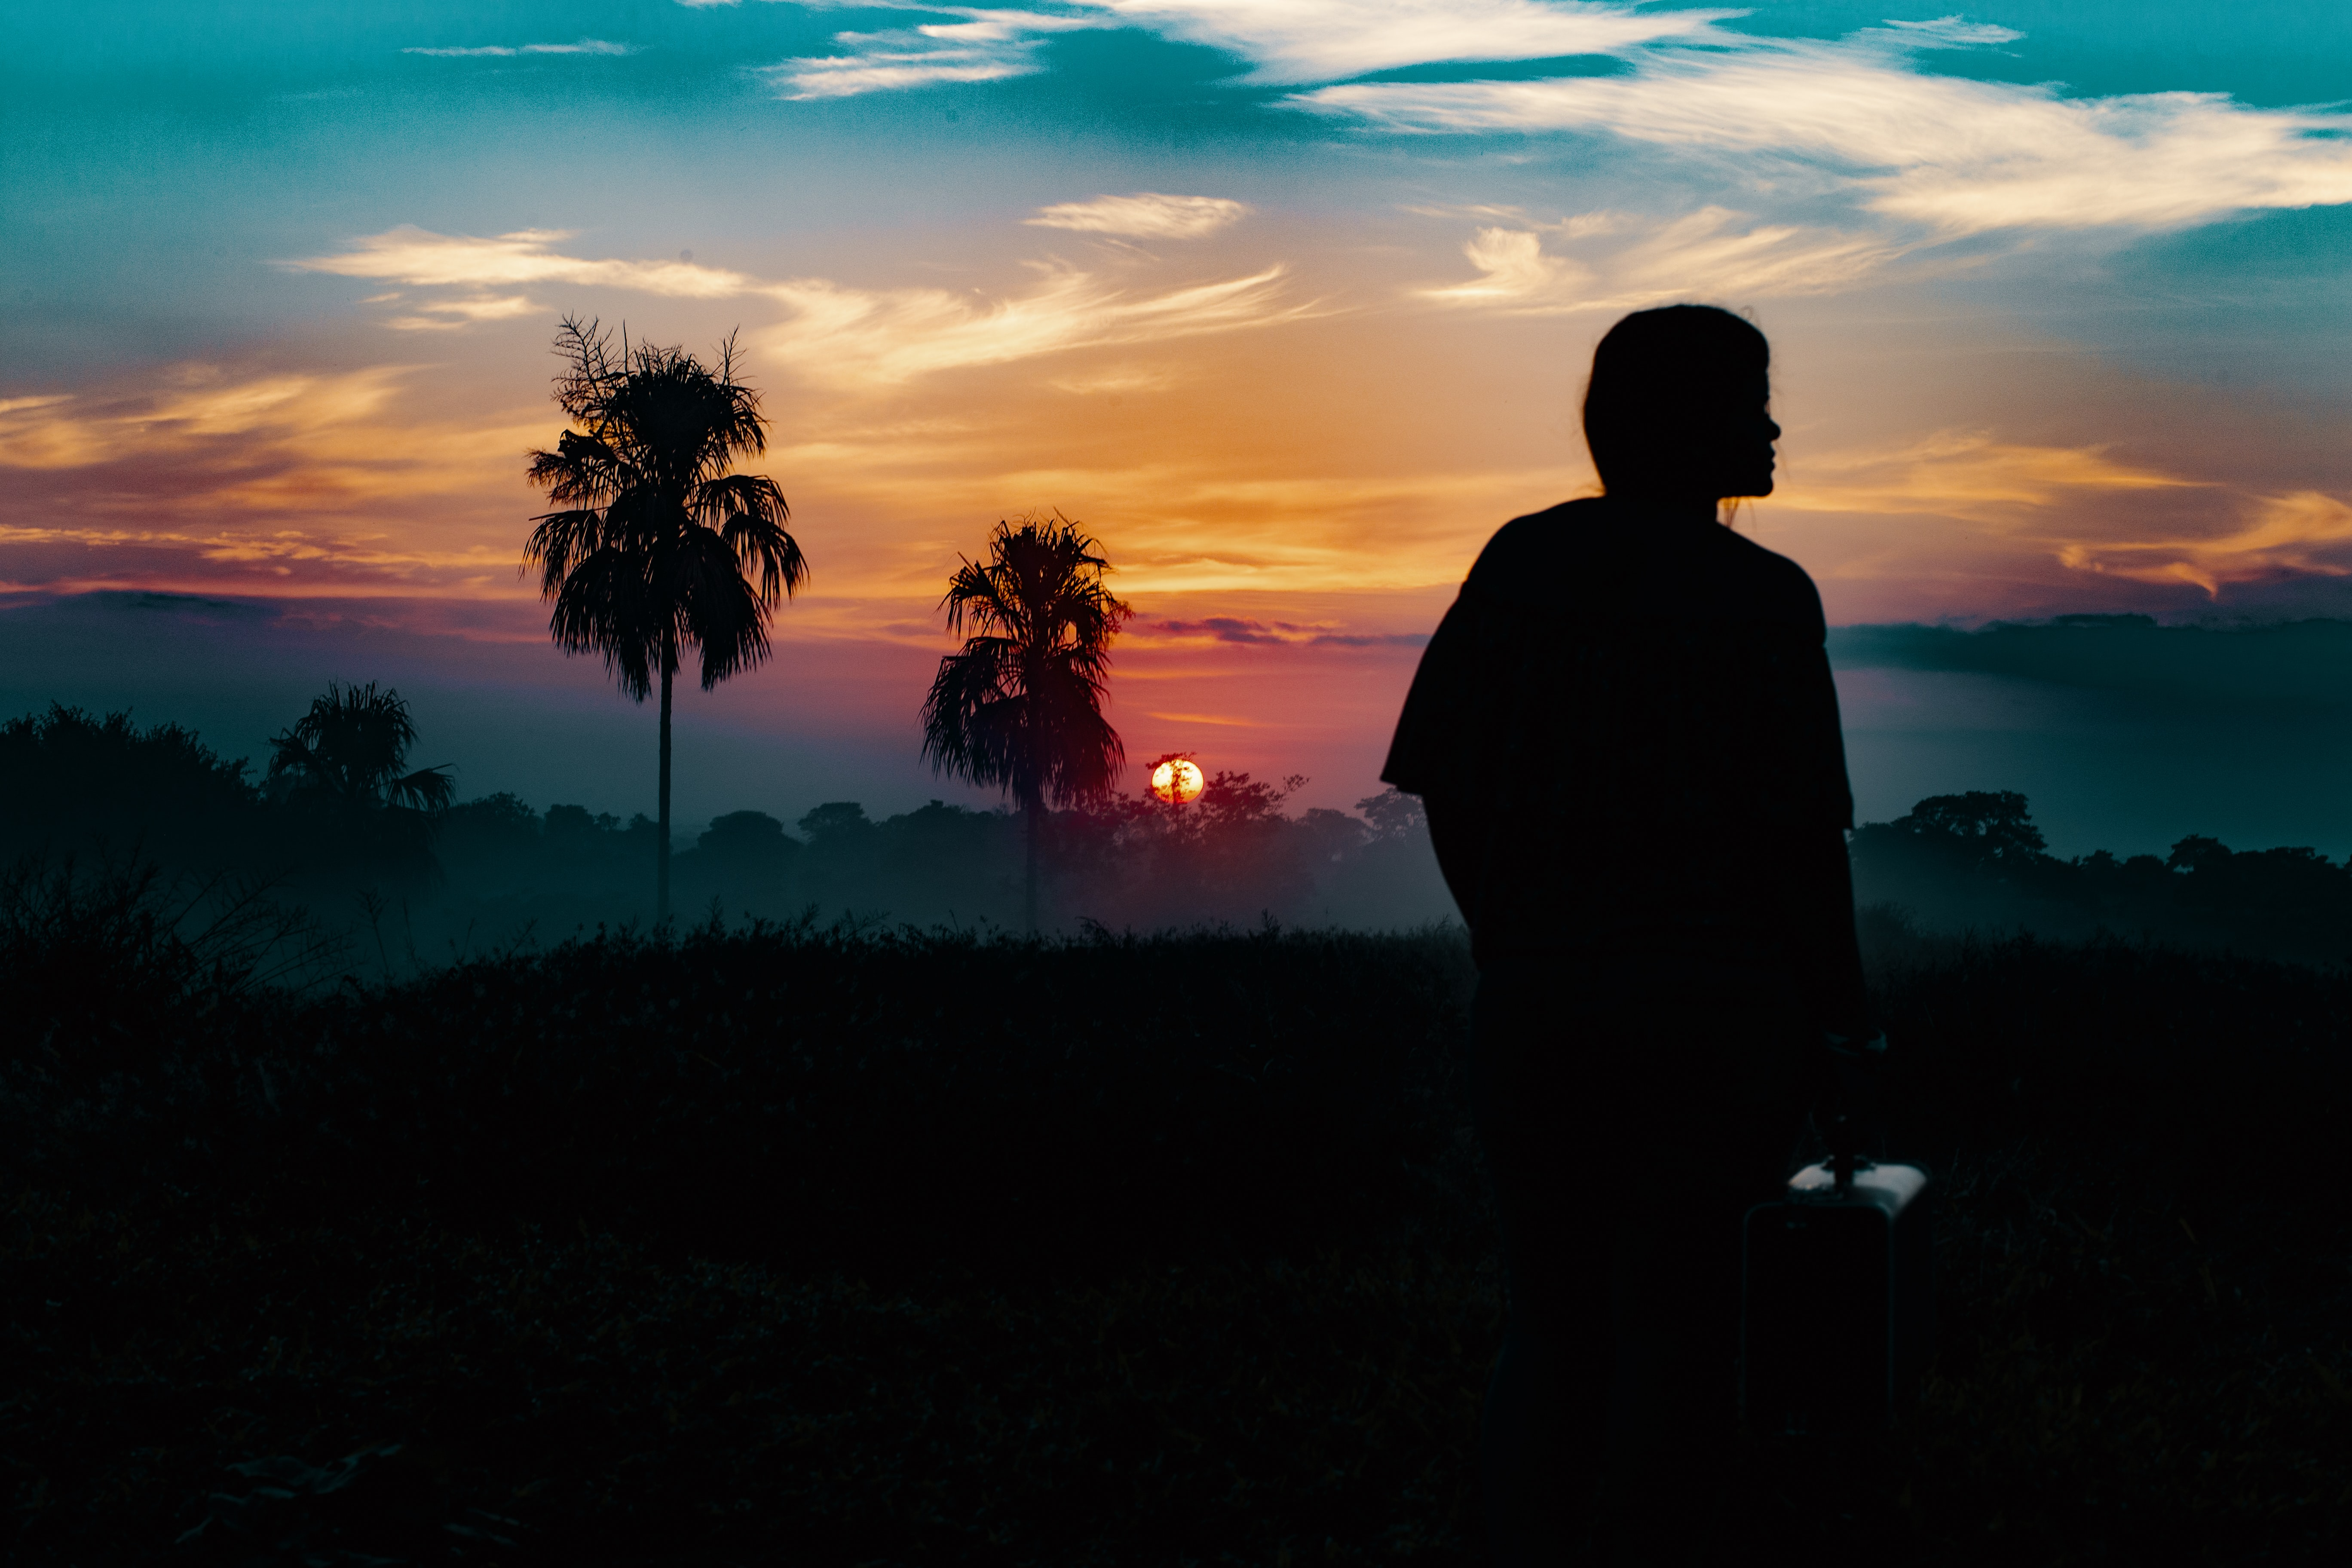 Silhouette person and mid-ground landscape in Columbia including palm trees with a sunset with red, orange and blue sky background